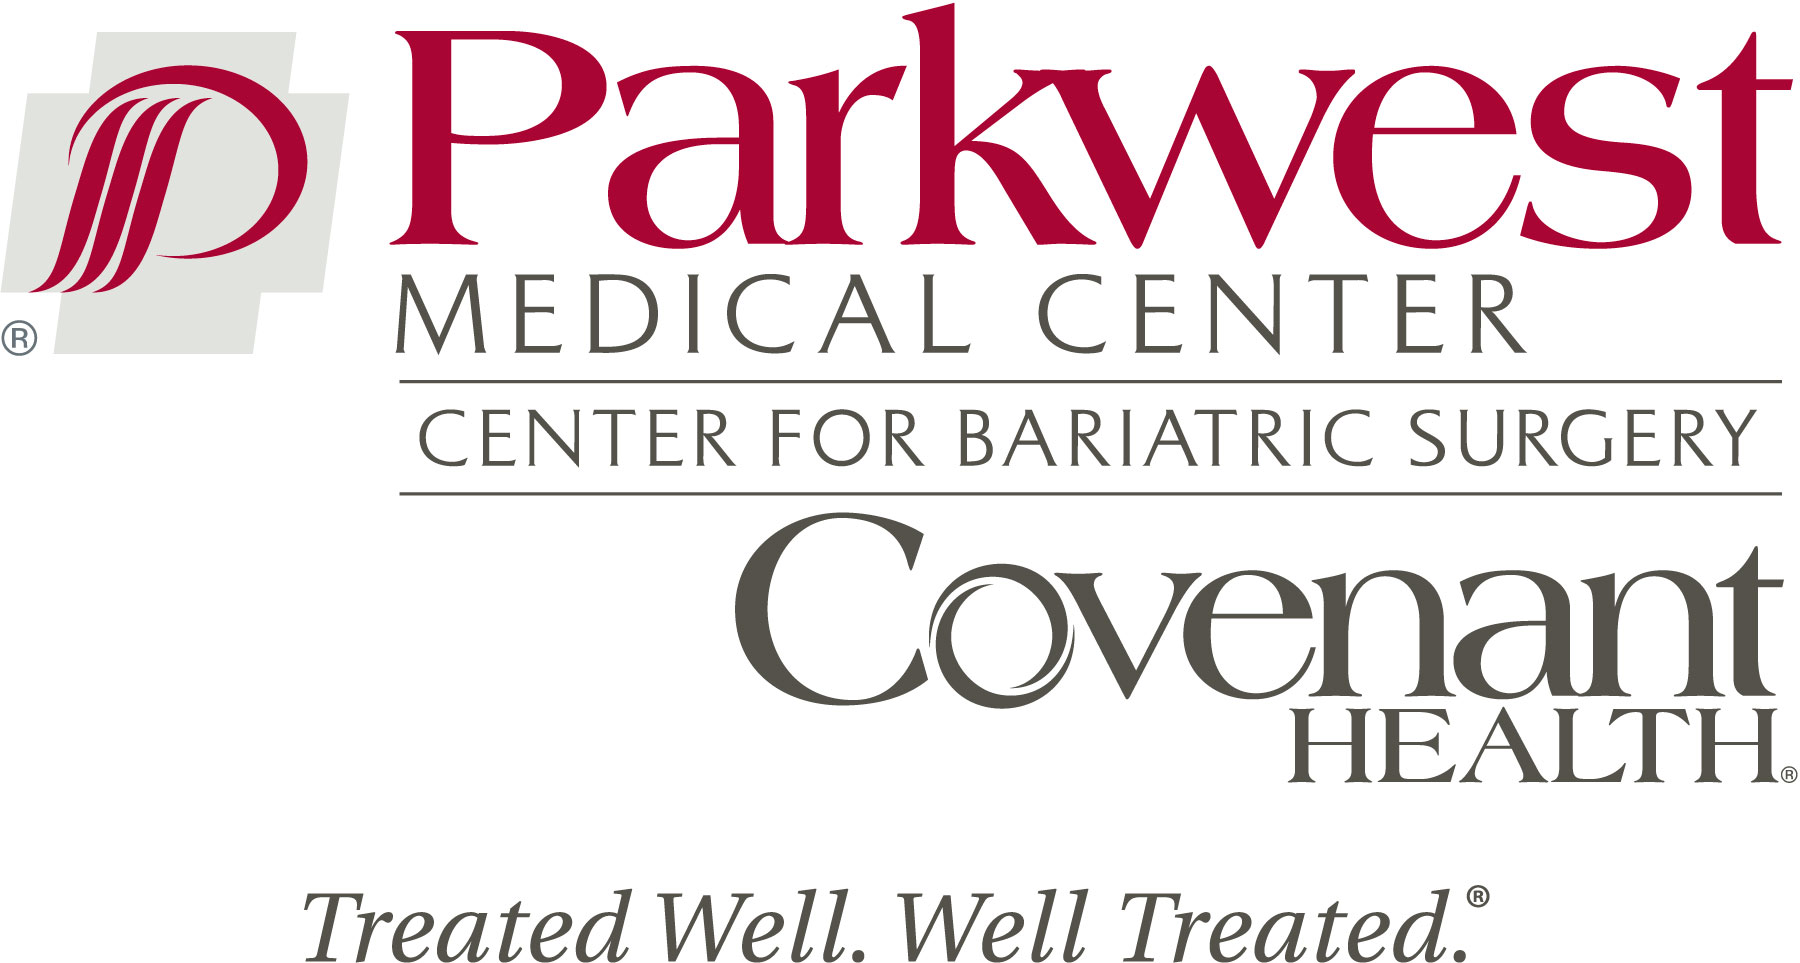 Bariatric center logo